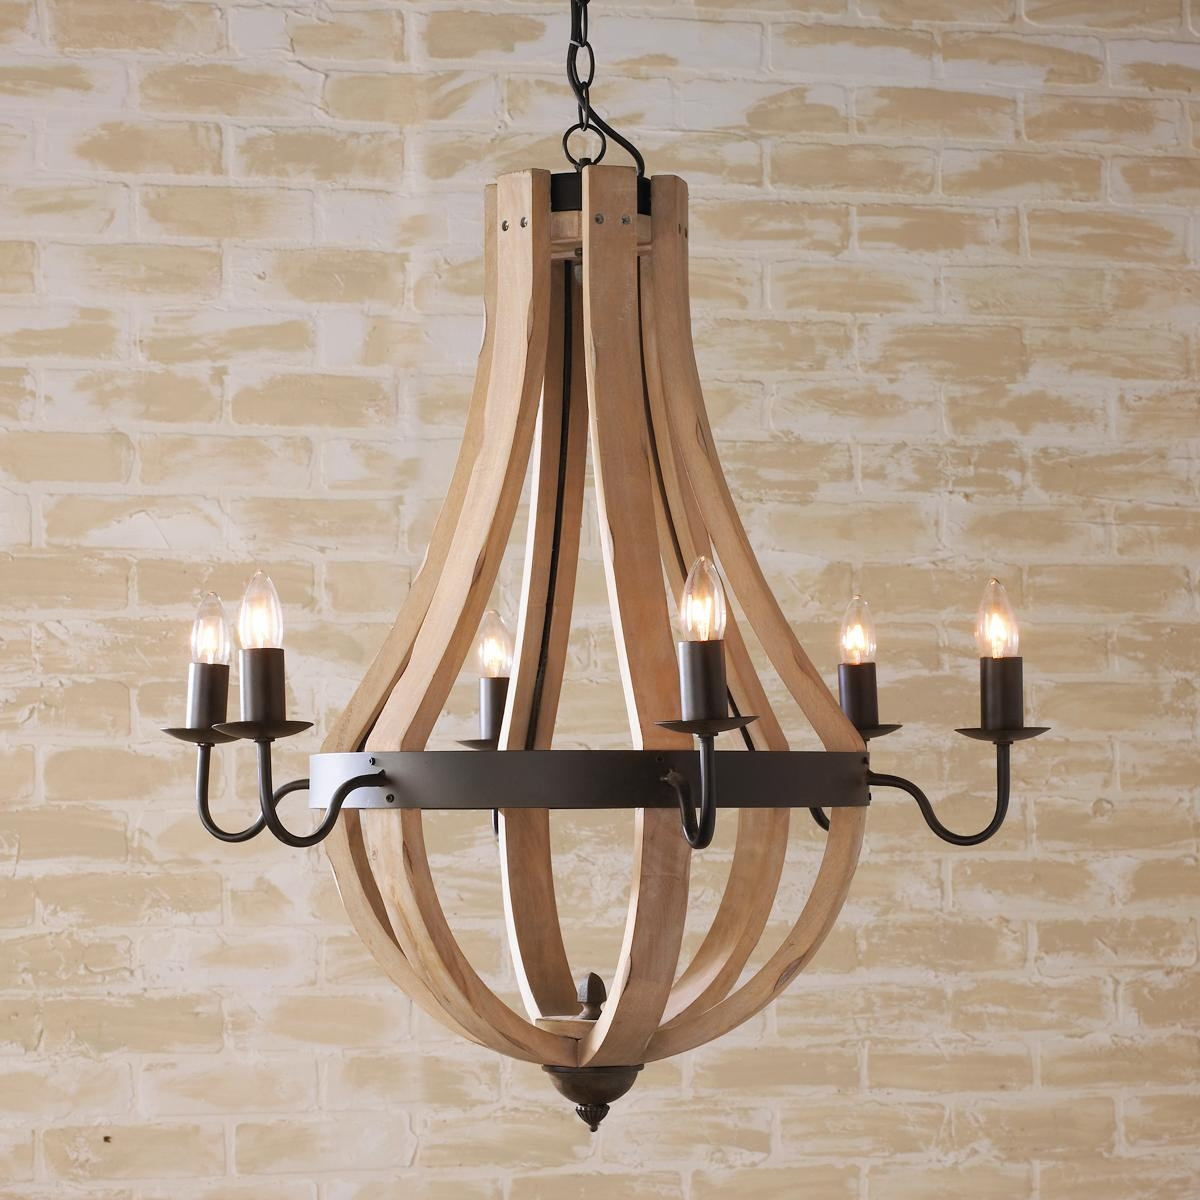 Wood Chandeliers Creative Home Decor Pinterest Within Wooden Chandeliers (#12 of 12)